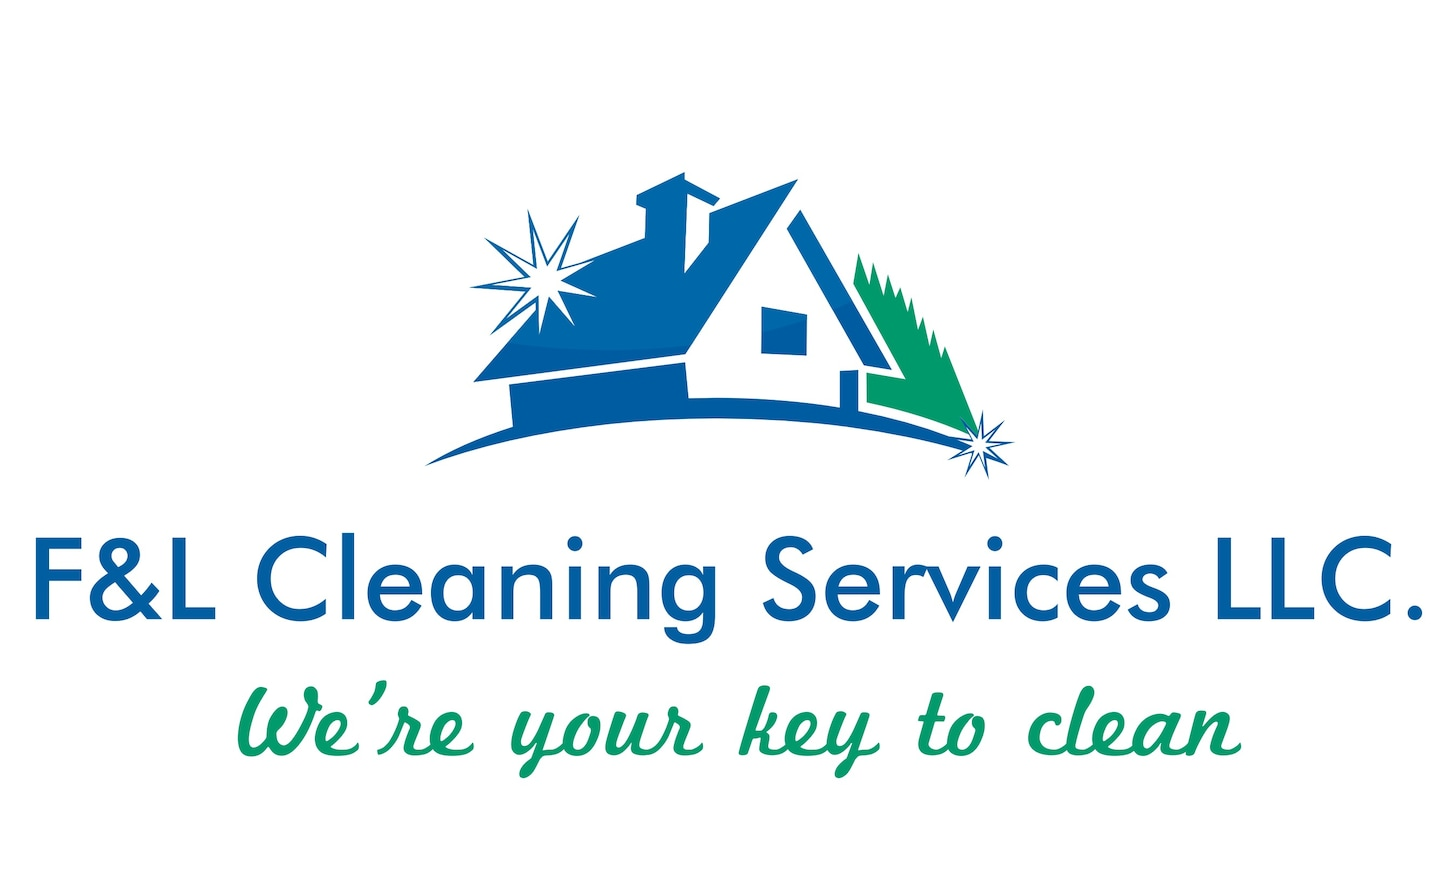 F&L Cleaning Services LLC.